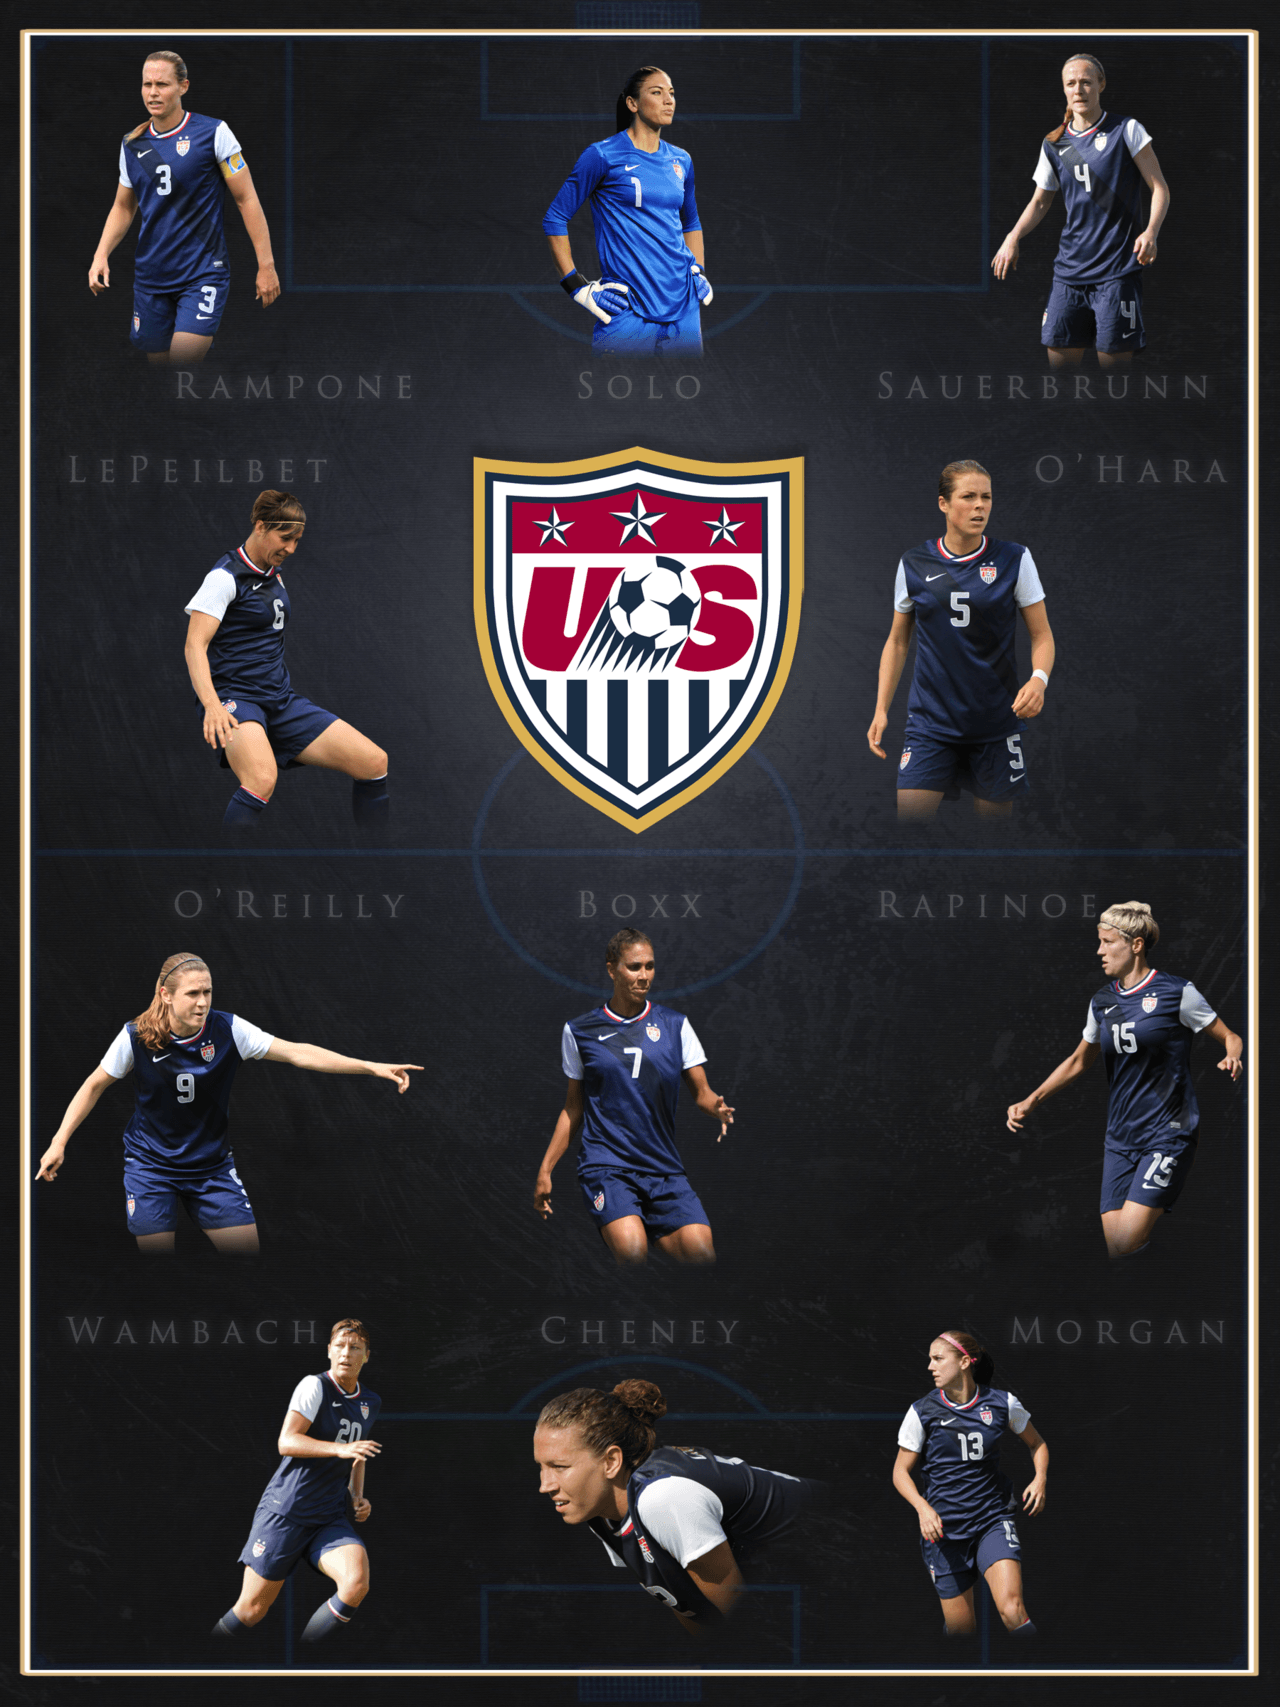 US Women's National Team Who's ur fav in da pic Mines obviously